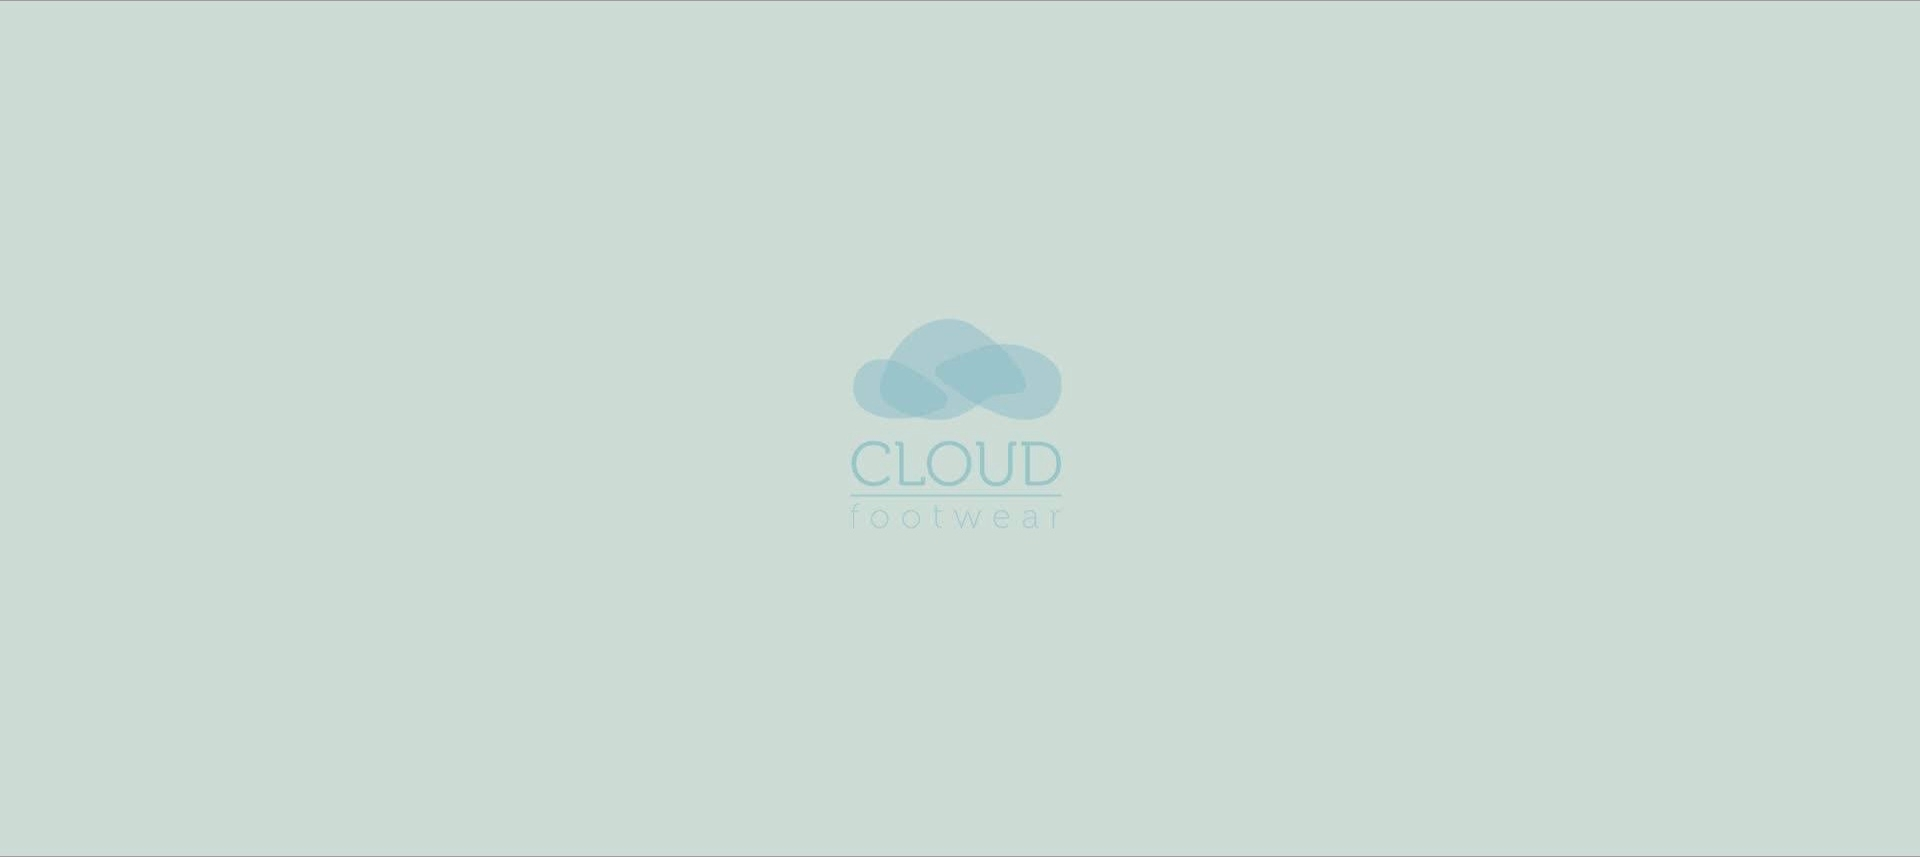 Cloud Footwear logo